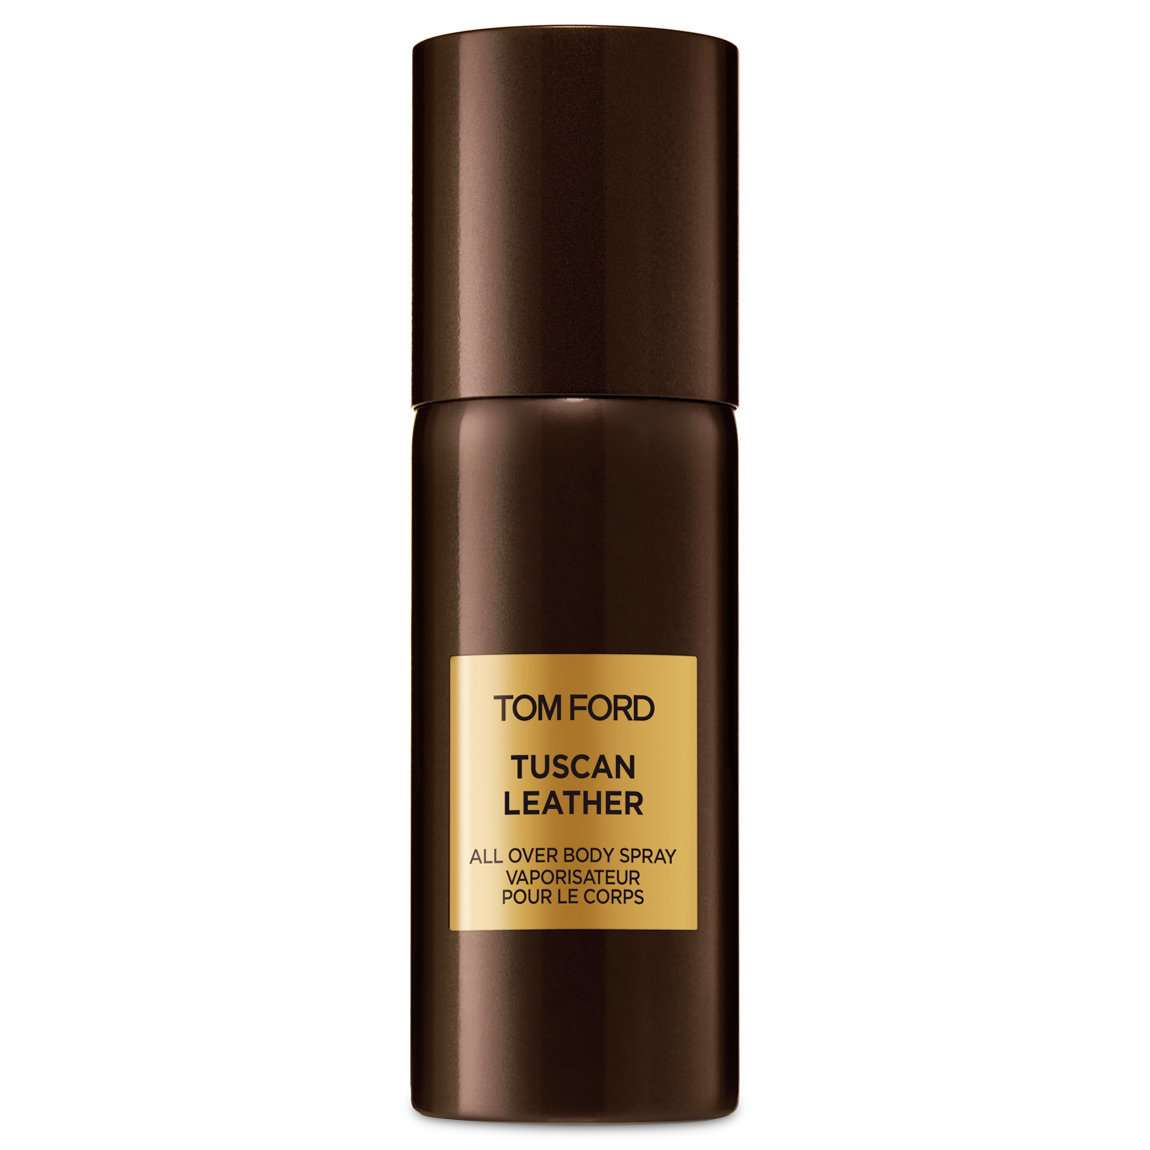 TOM FORD Tuscan Leather All Over Body Spray alternative view 1 - product swatch.